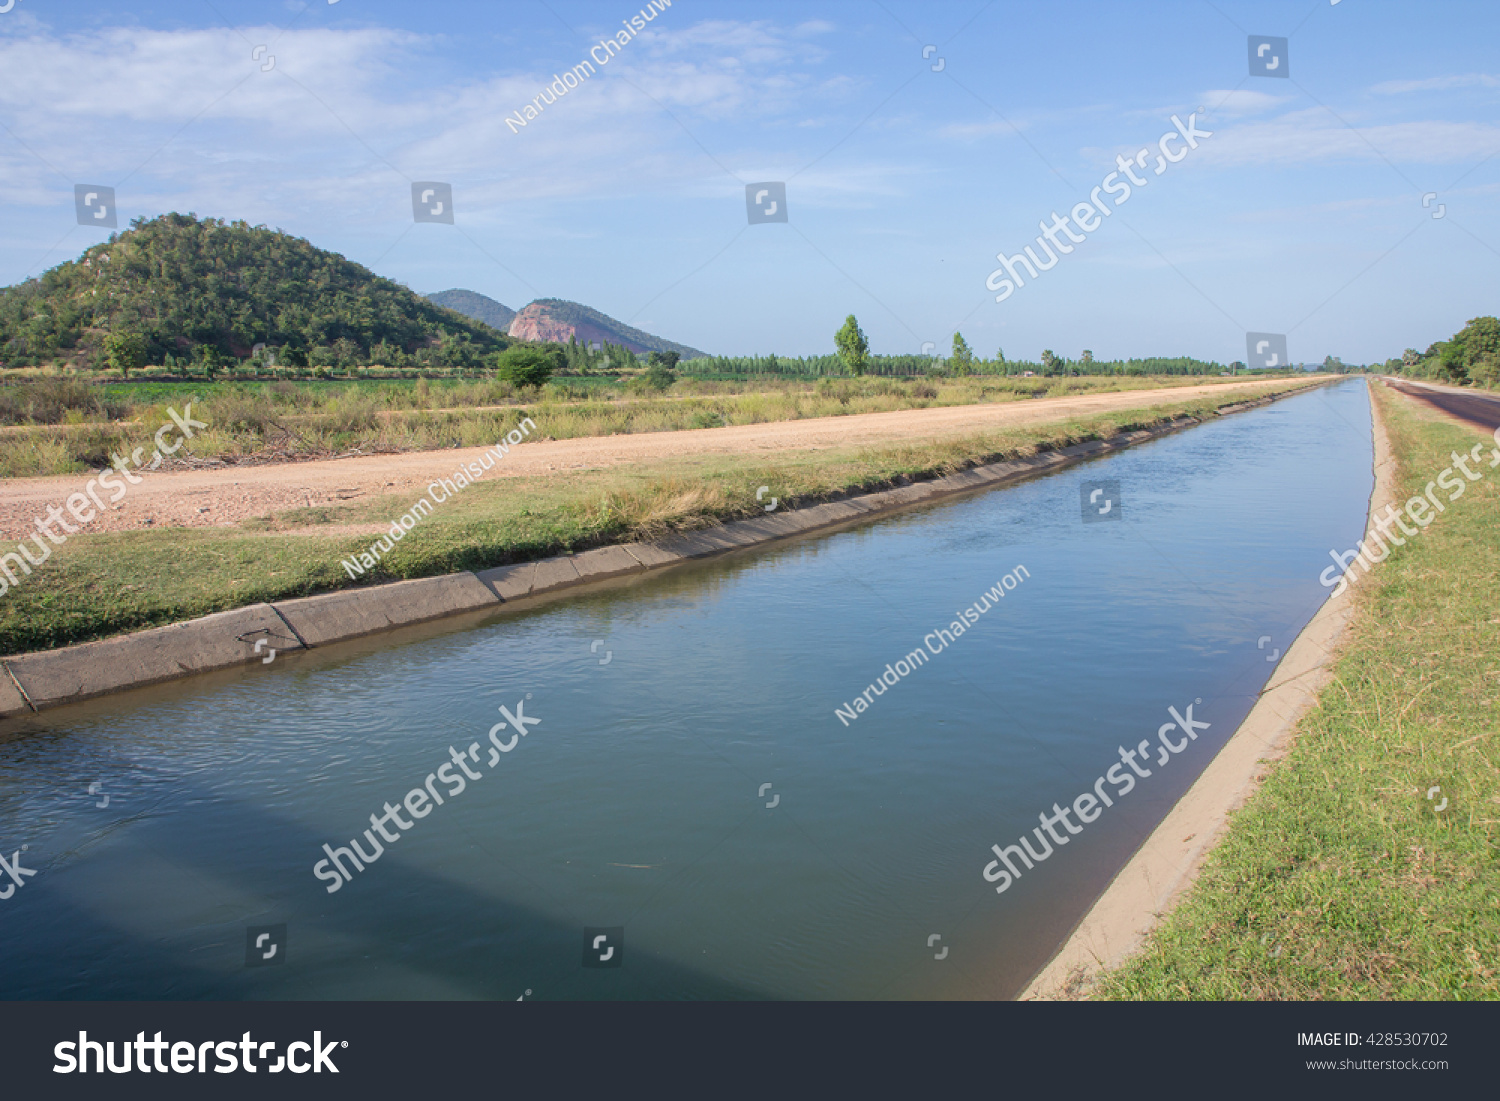 Agricultural Irrigation Canal : Irrigation canal between agricultural crops thailand stock